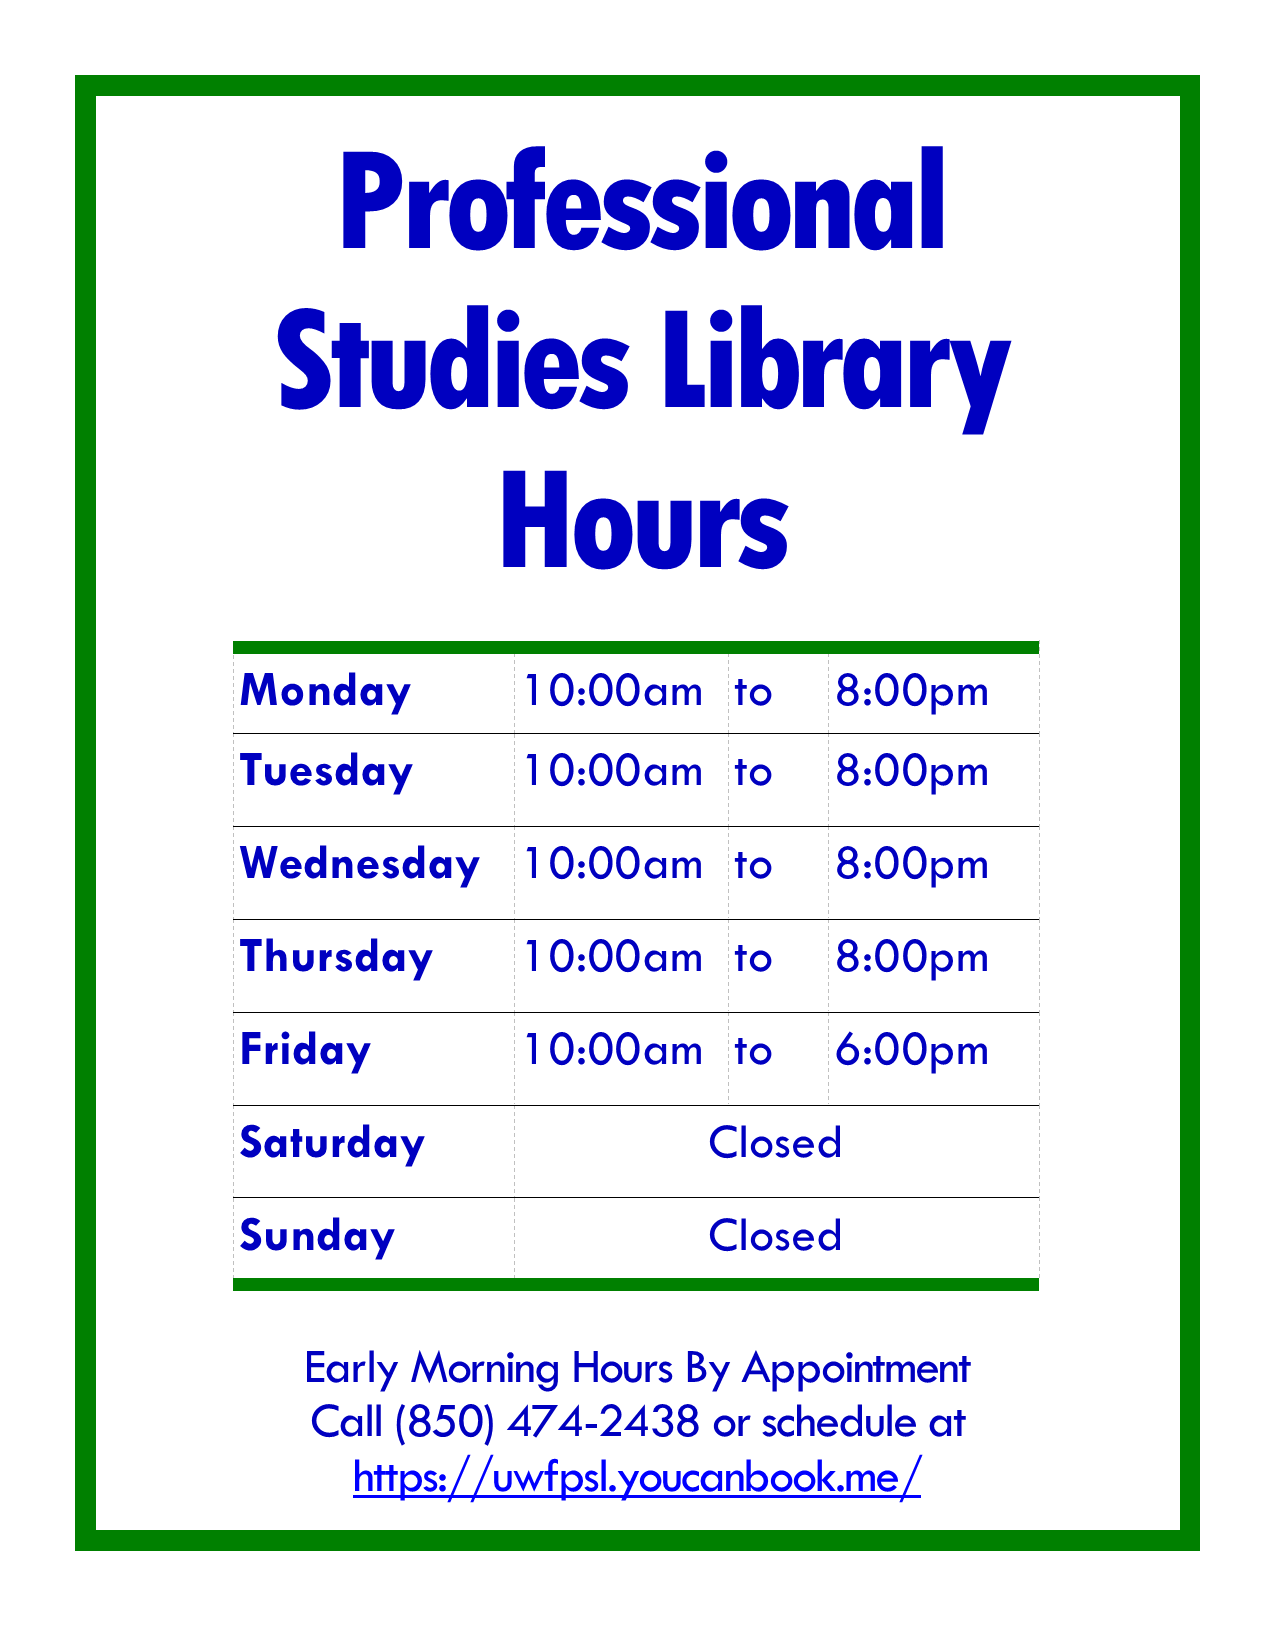 Professional Studies Library Hours: 10:00 am - 8:00 pm, Monday-Thursday; 10:00 am - 6:00 pm, Friday